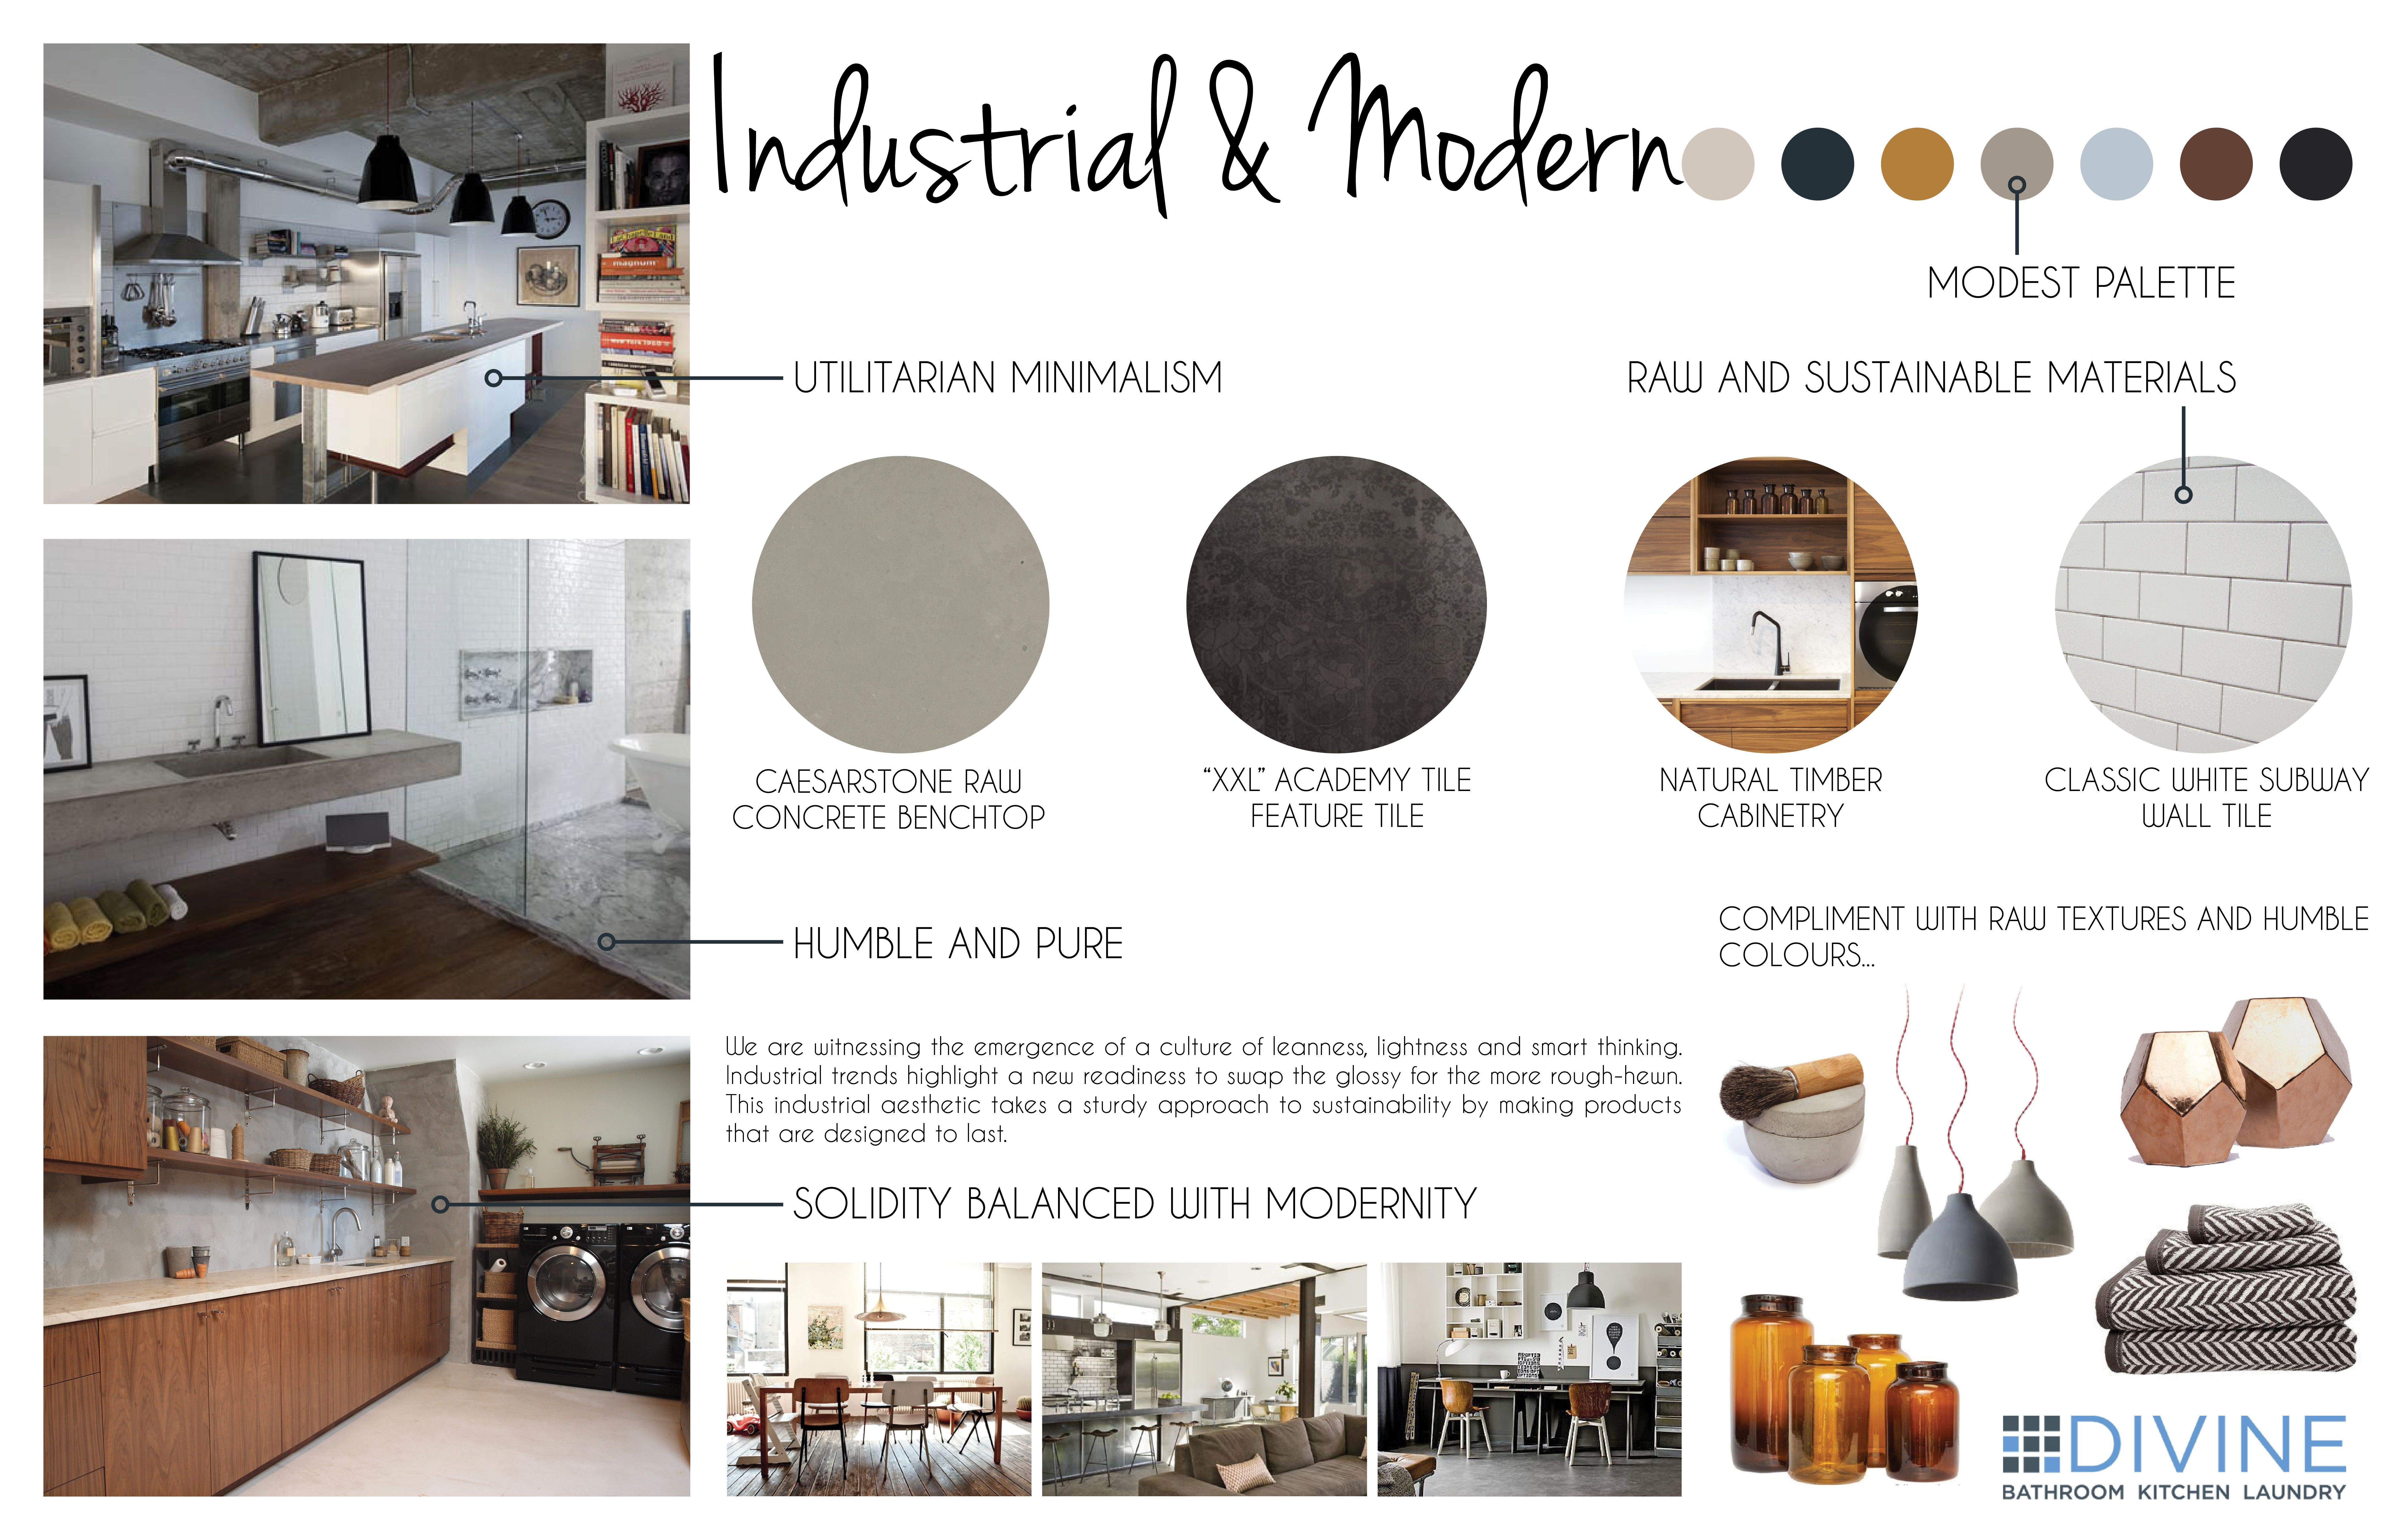 Are You Going For An Industrial And Modern Style With Your Bathroom Kitchen Or Decor Mood